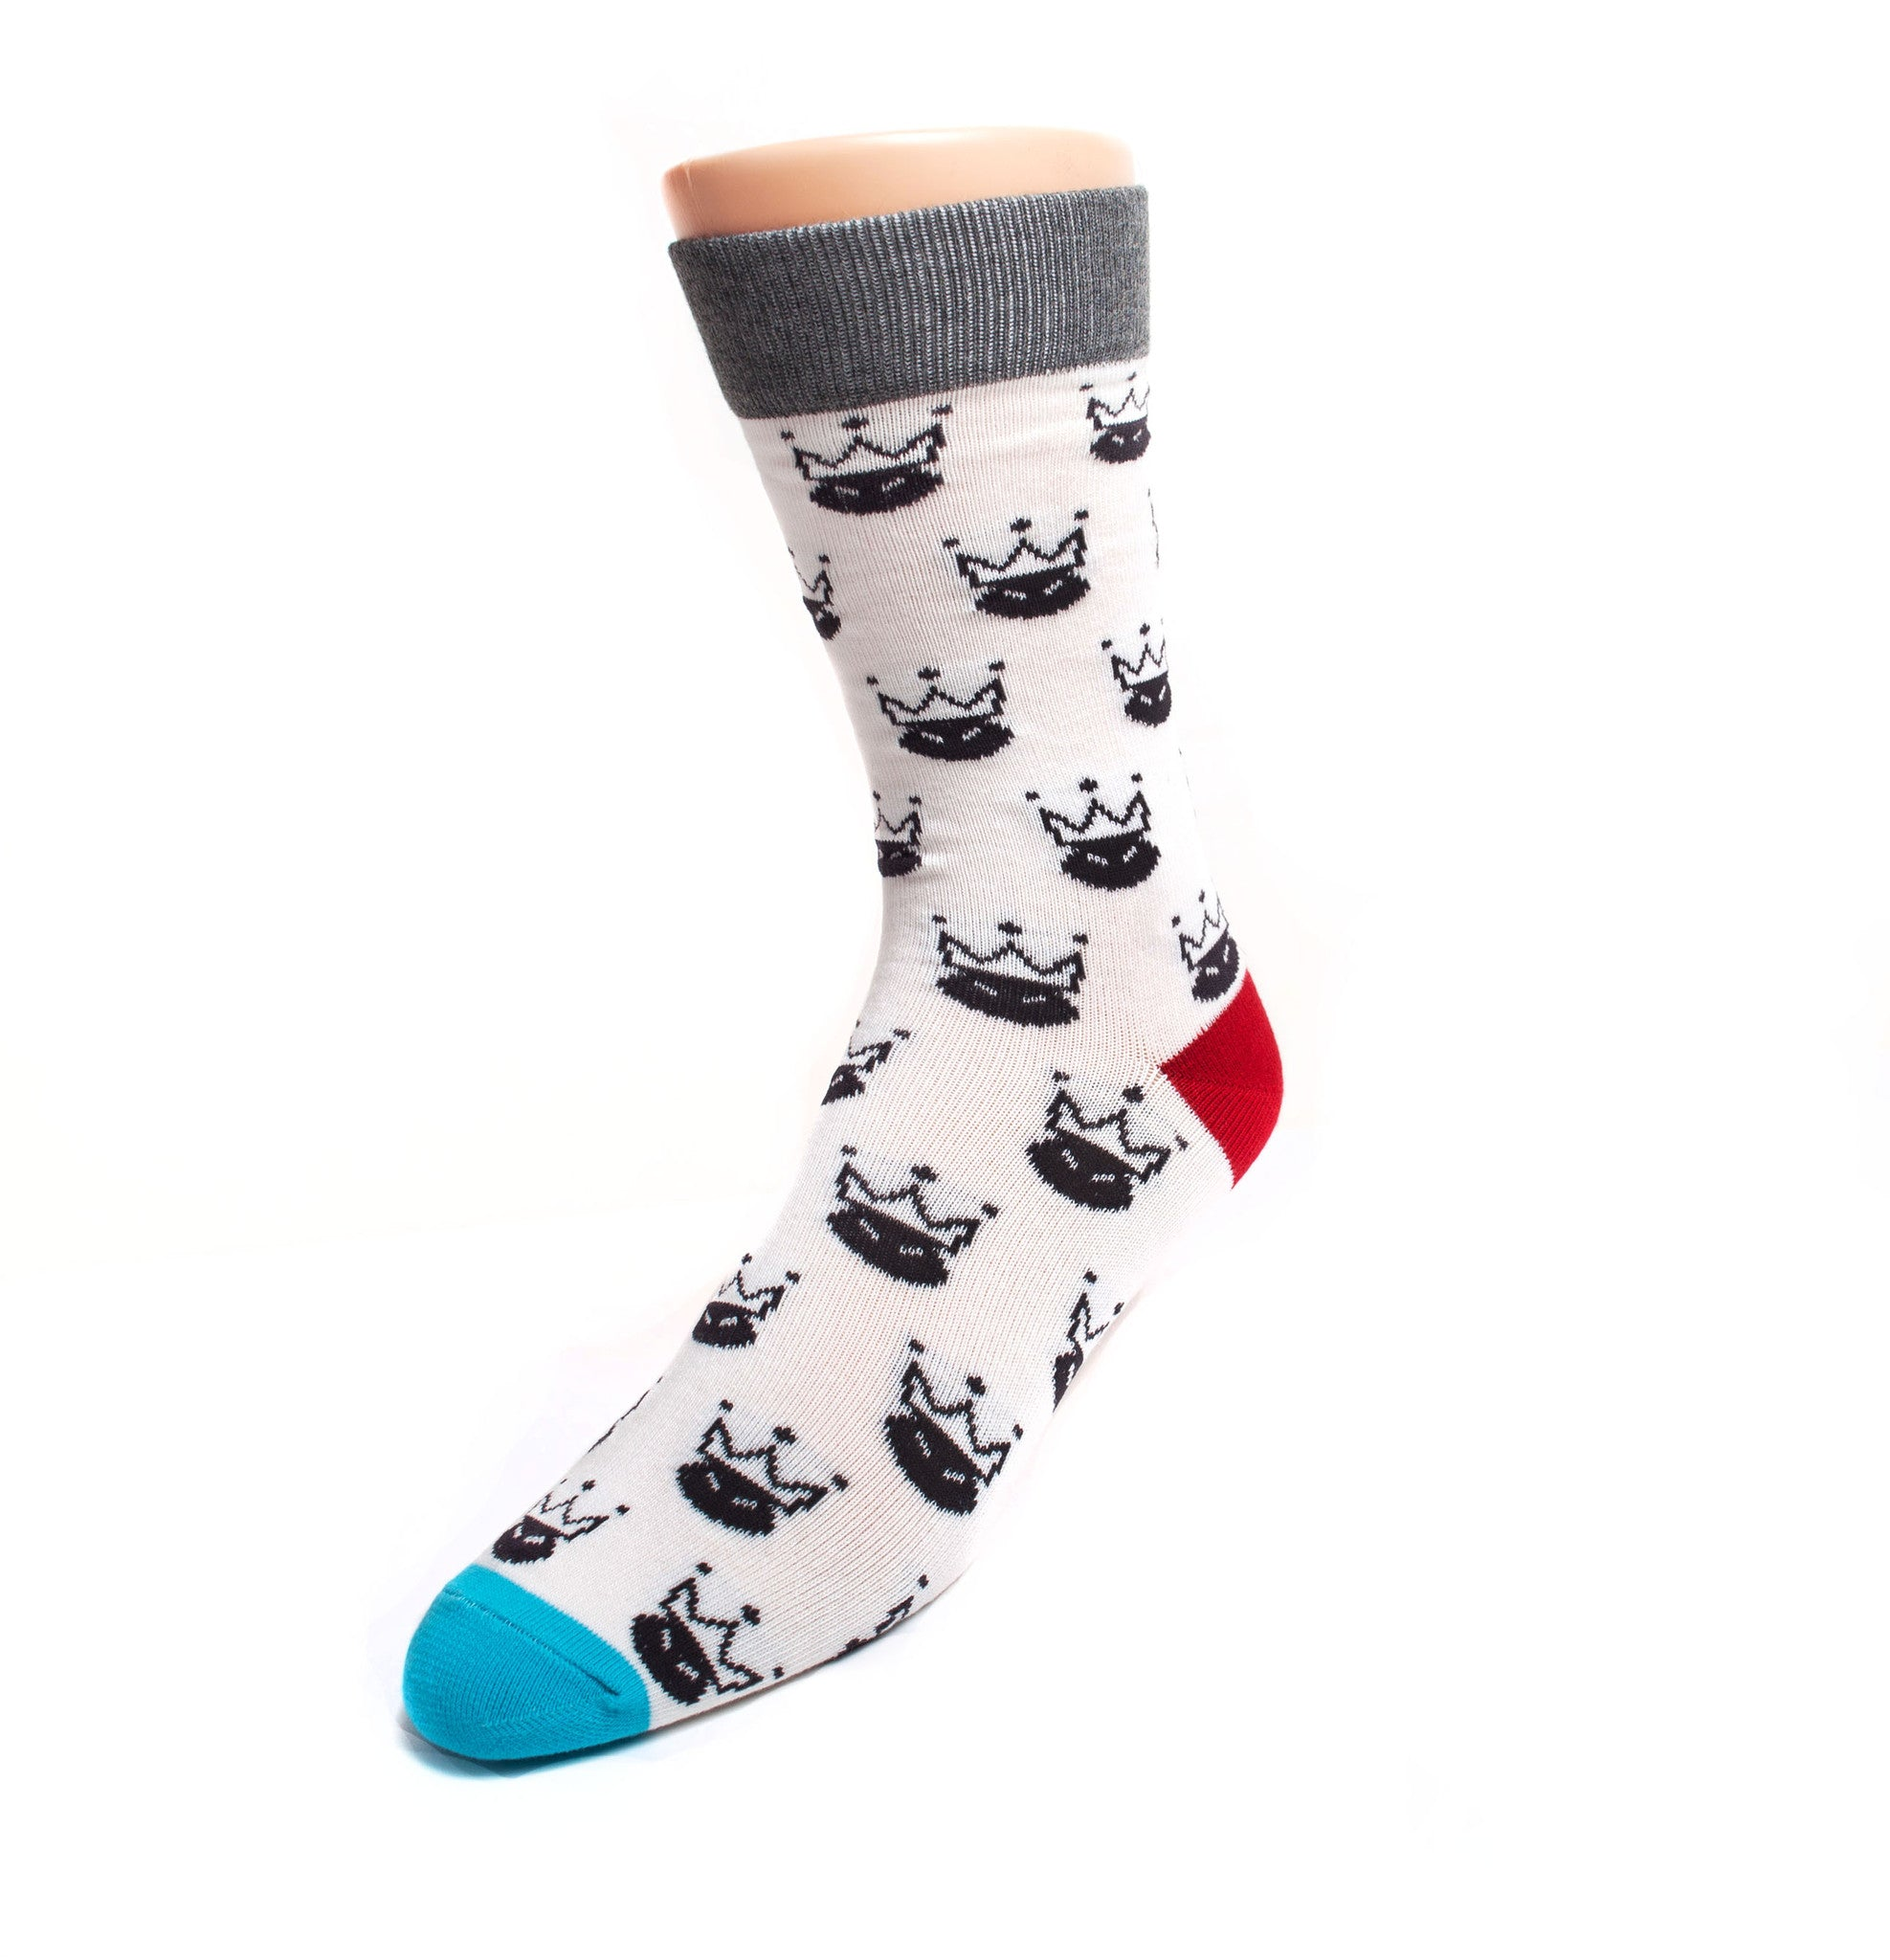 KingMe sock | Off White